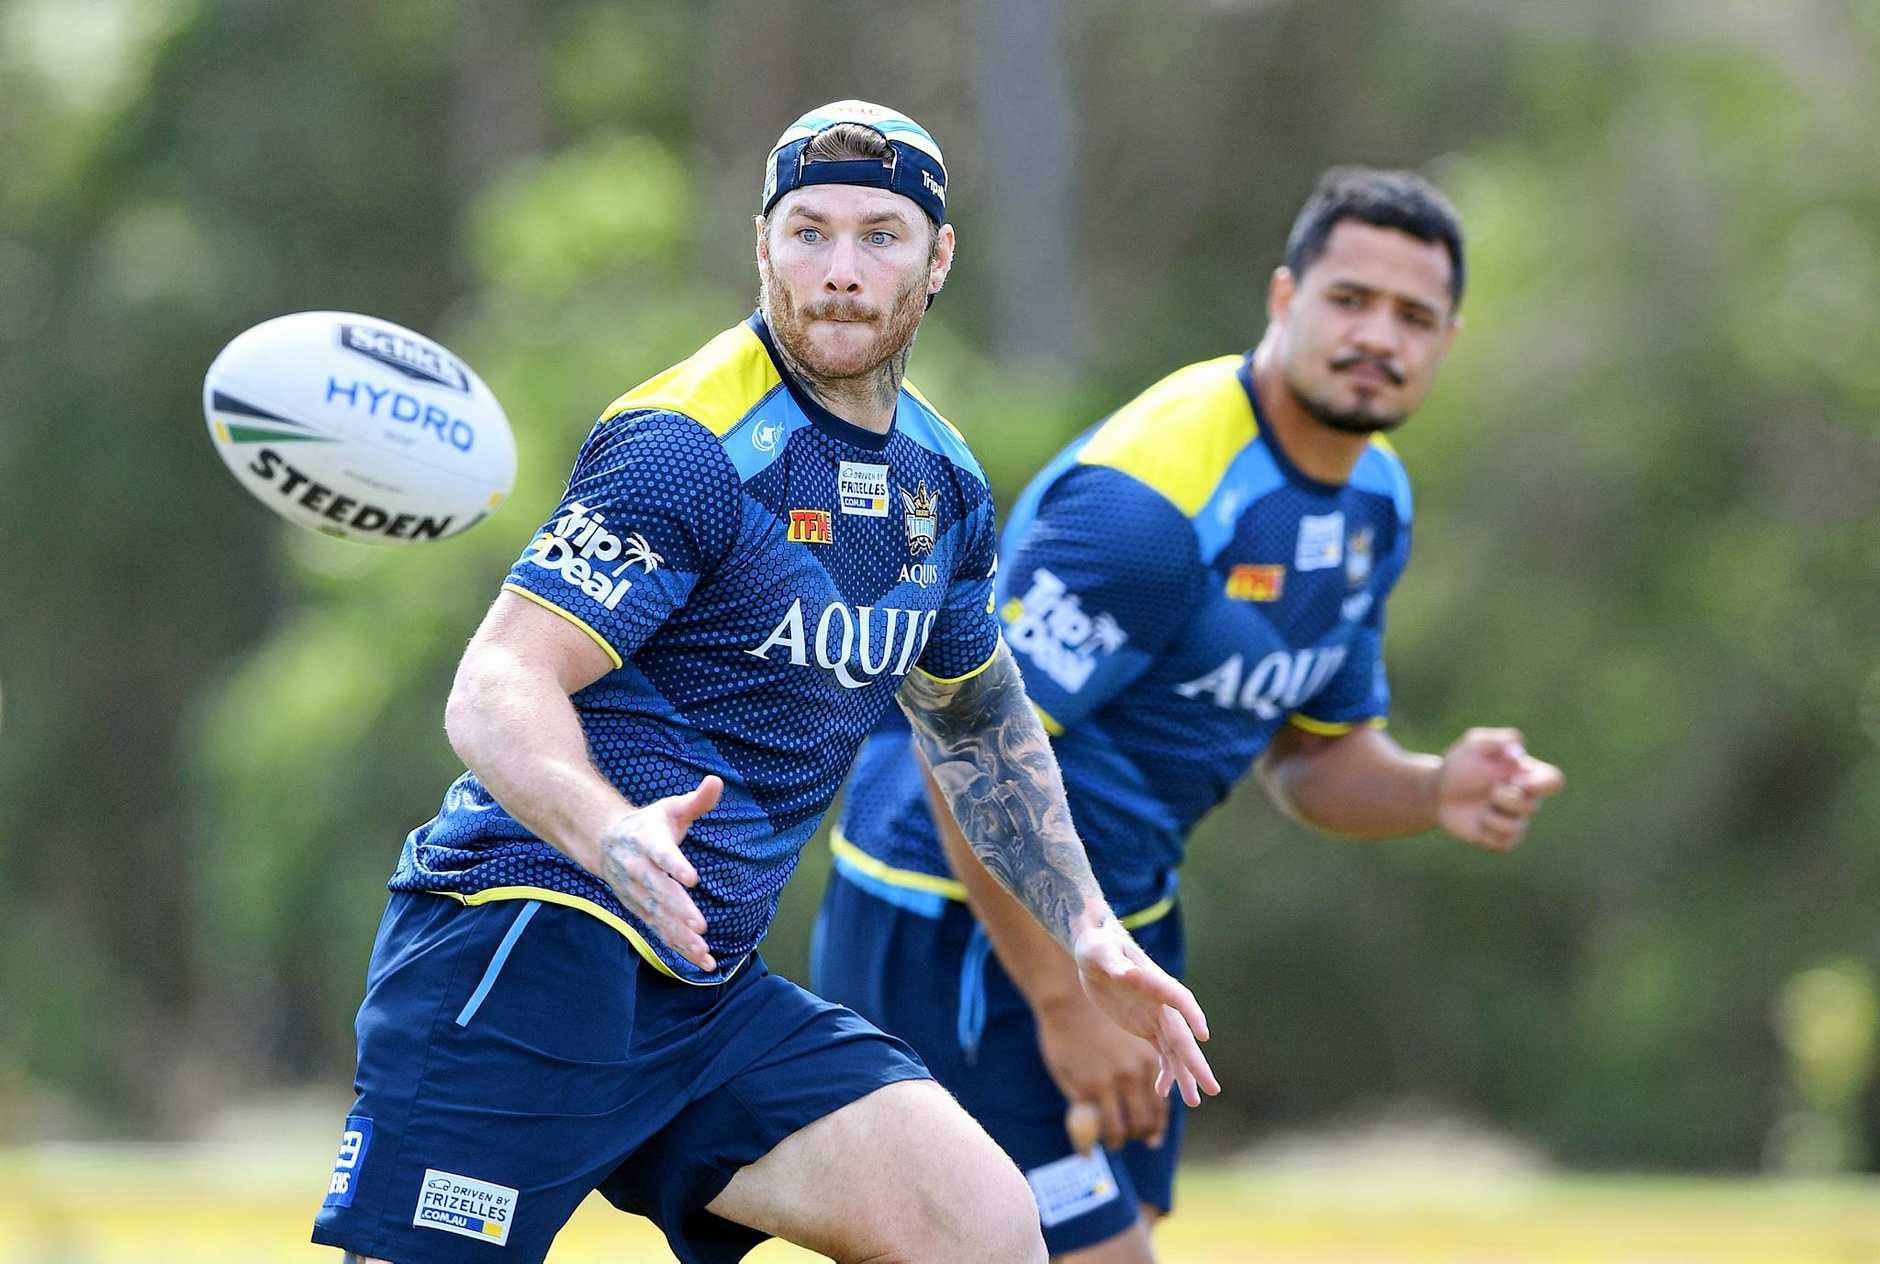 Chris McQueen receives the ball during the Gold Coast Titans training session